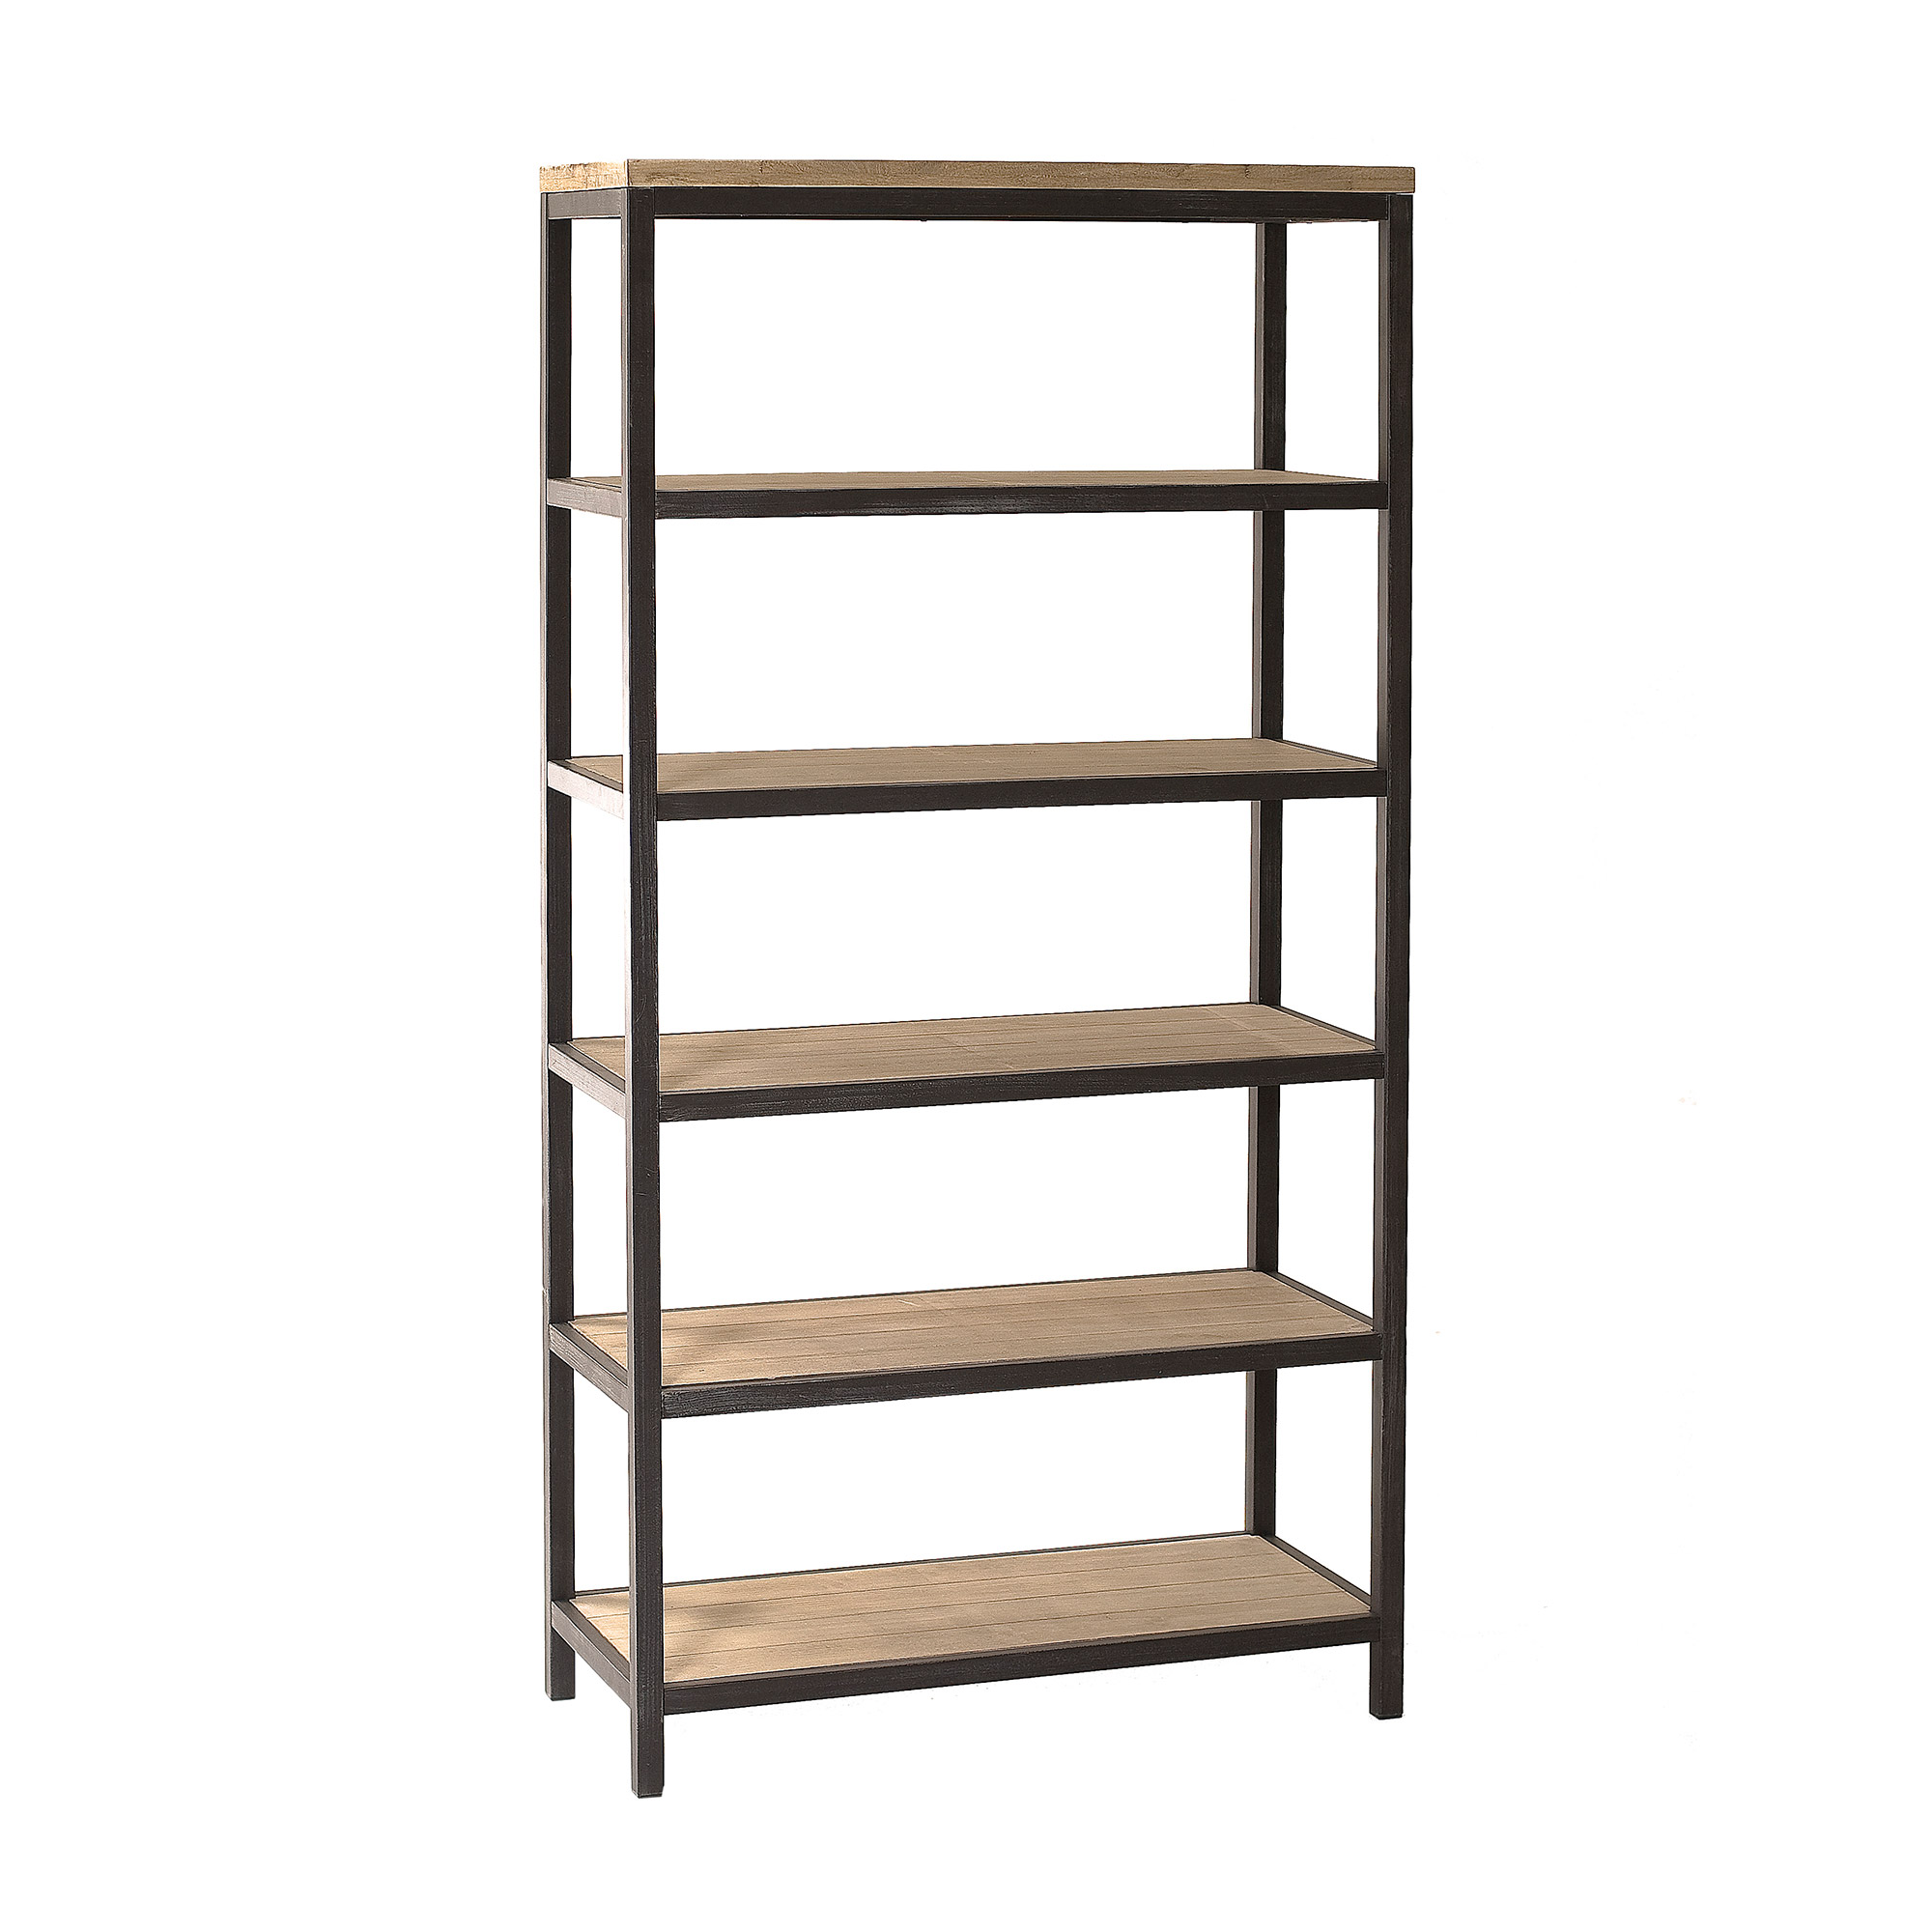 Etagere bois et metal id es de d coration int rieure french decor for Etagere murale aluminium